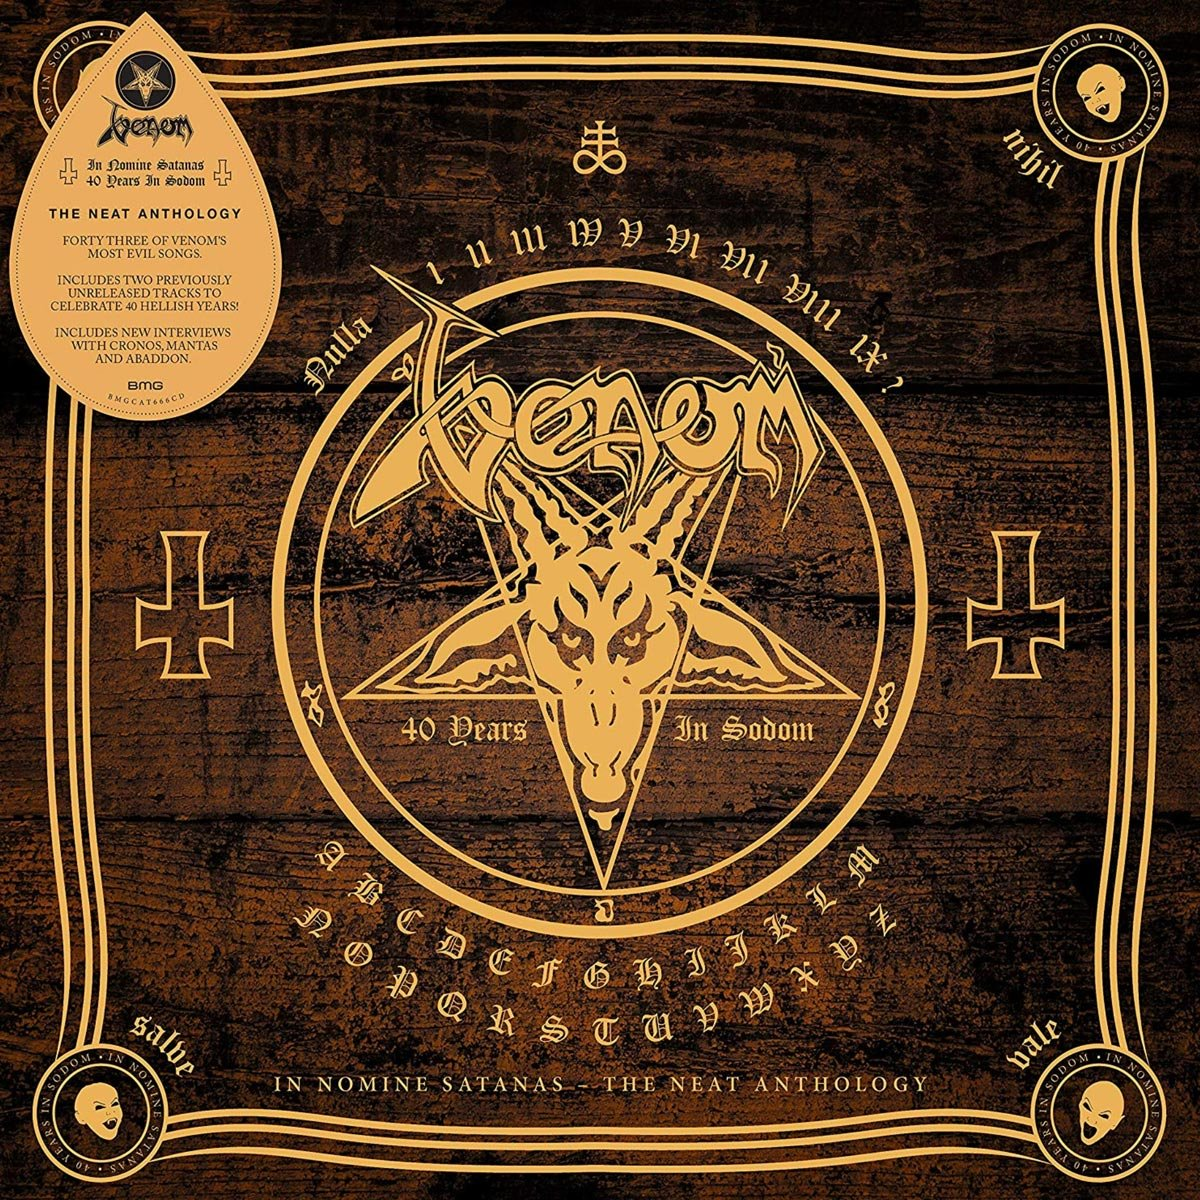 venom black metal in nomine satanas vinyl cd collection